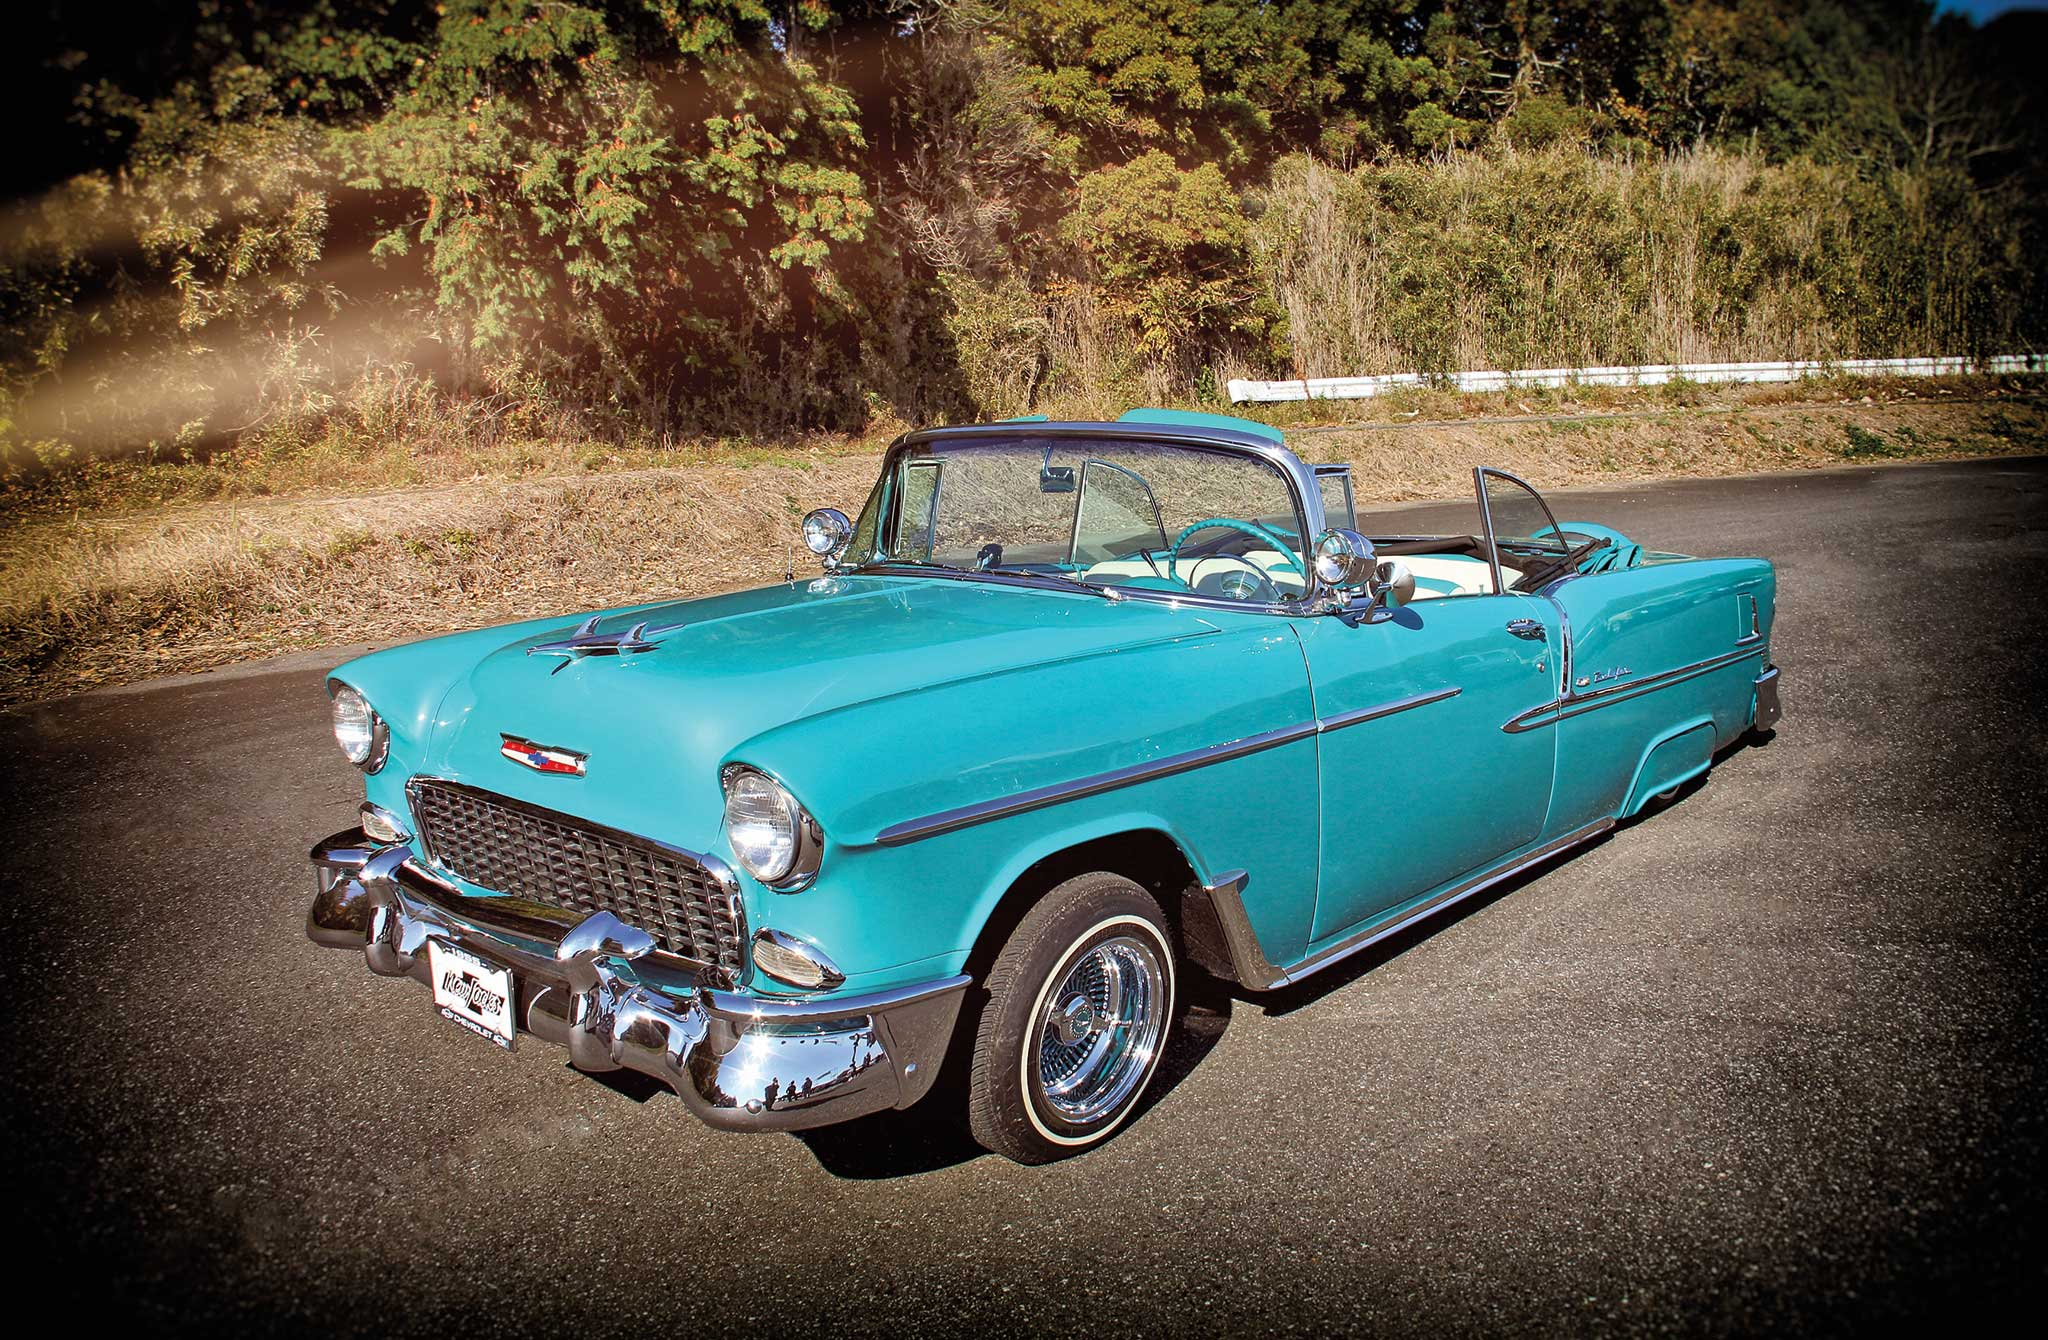 1955 Chevy Bel Air Convertible - American Classic In Japan